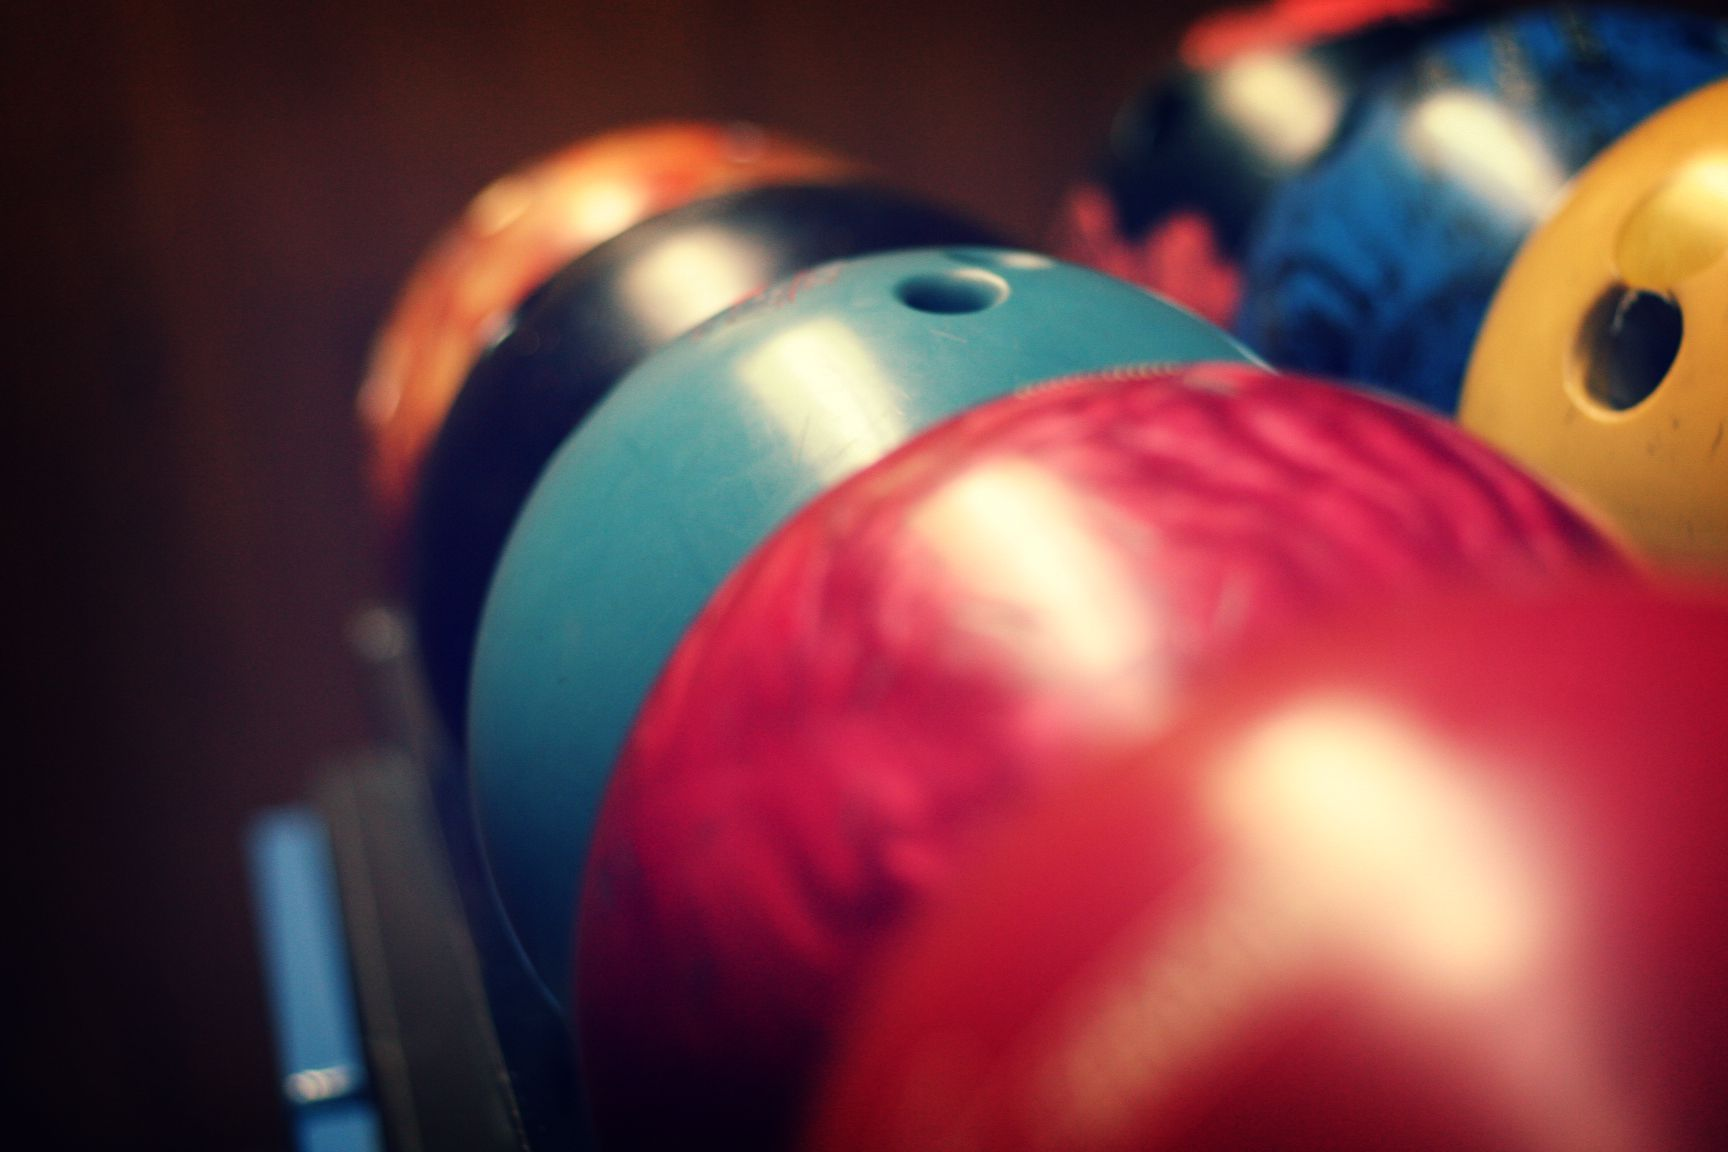 Would you like to learn something new? All you need is some wood and 16 spare bowling balls. Using just ...